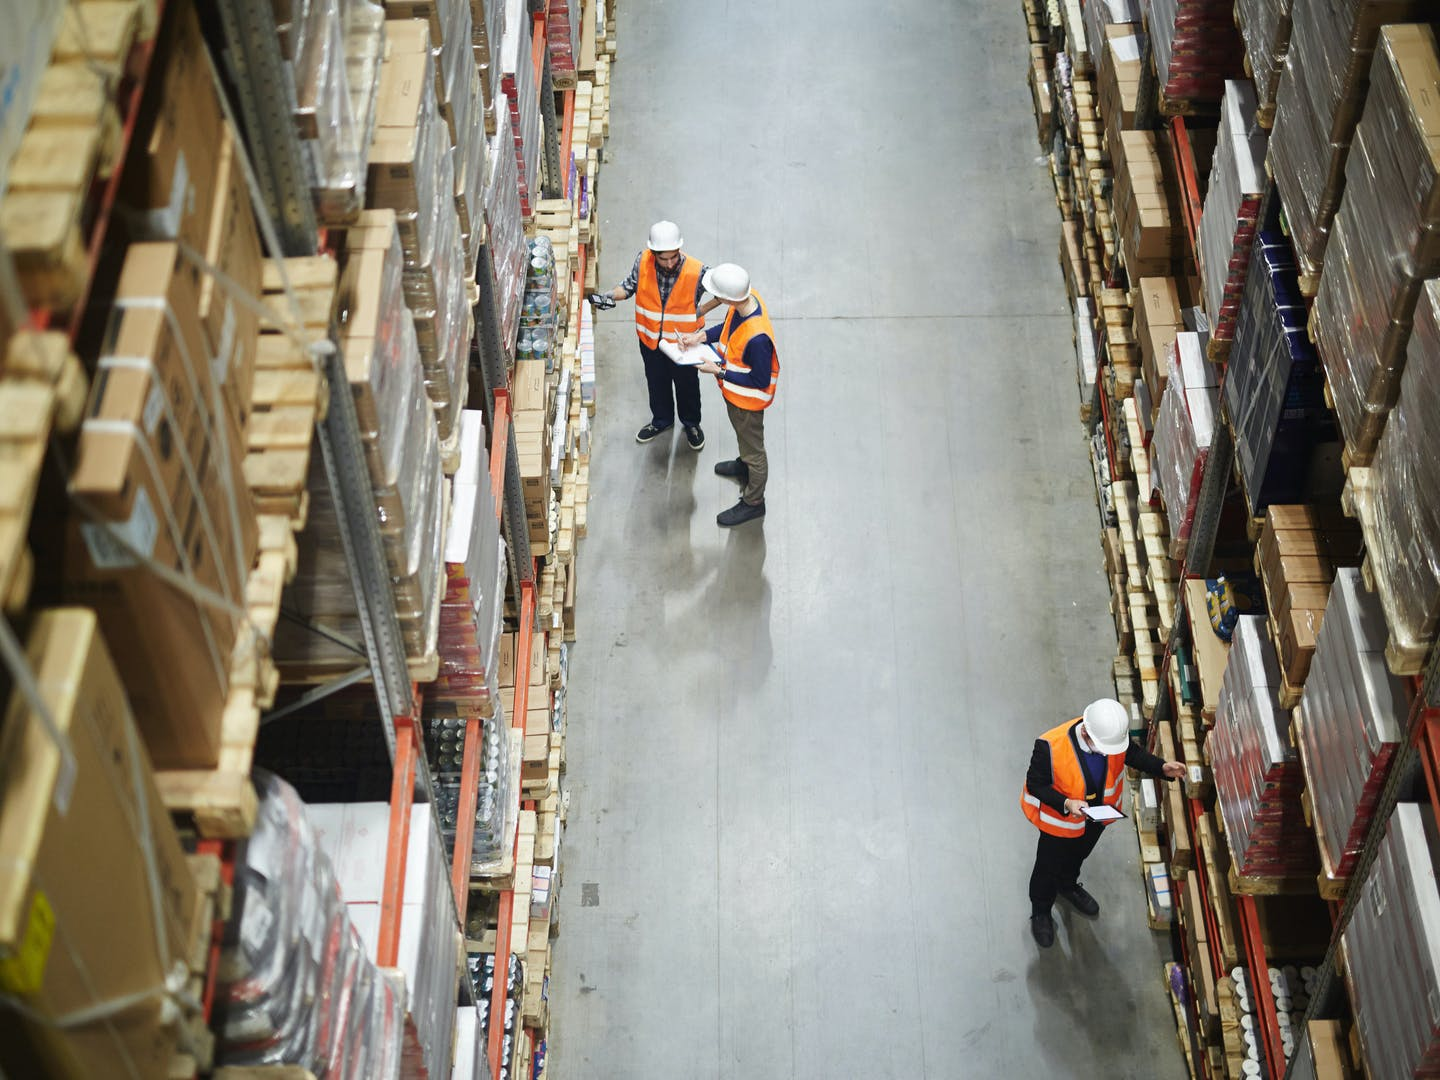 Whats the difference between a warehouse and distribution center